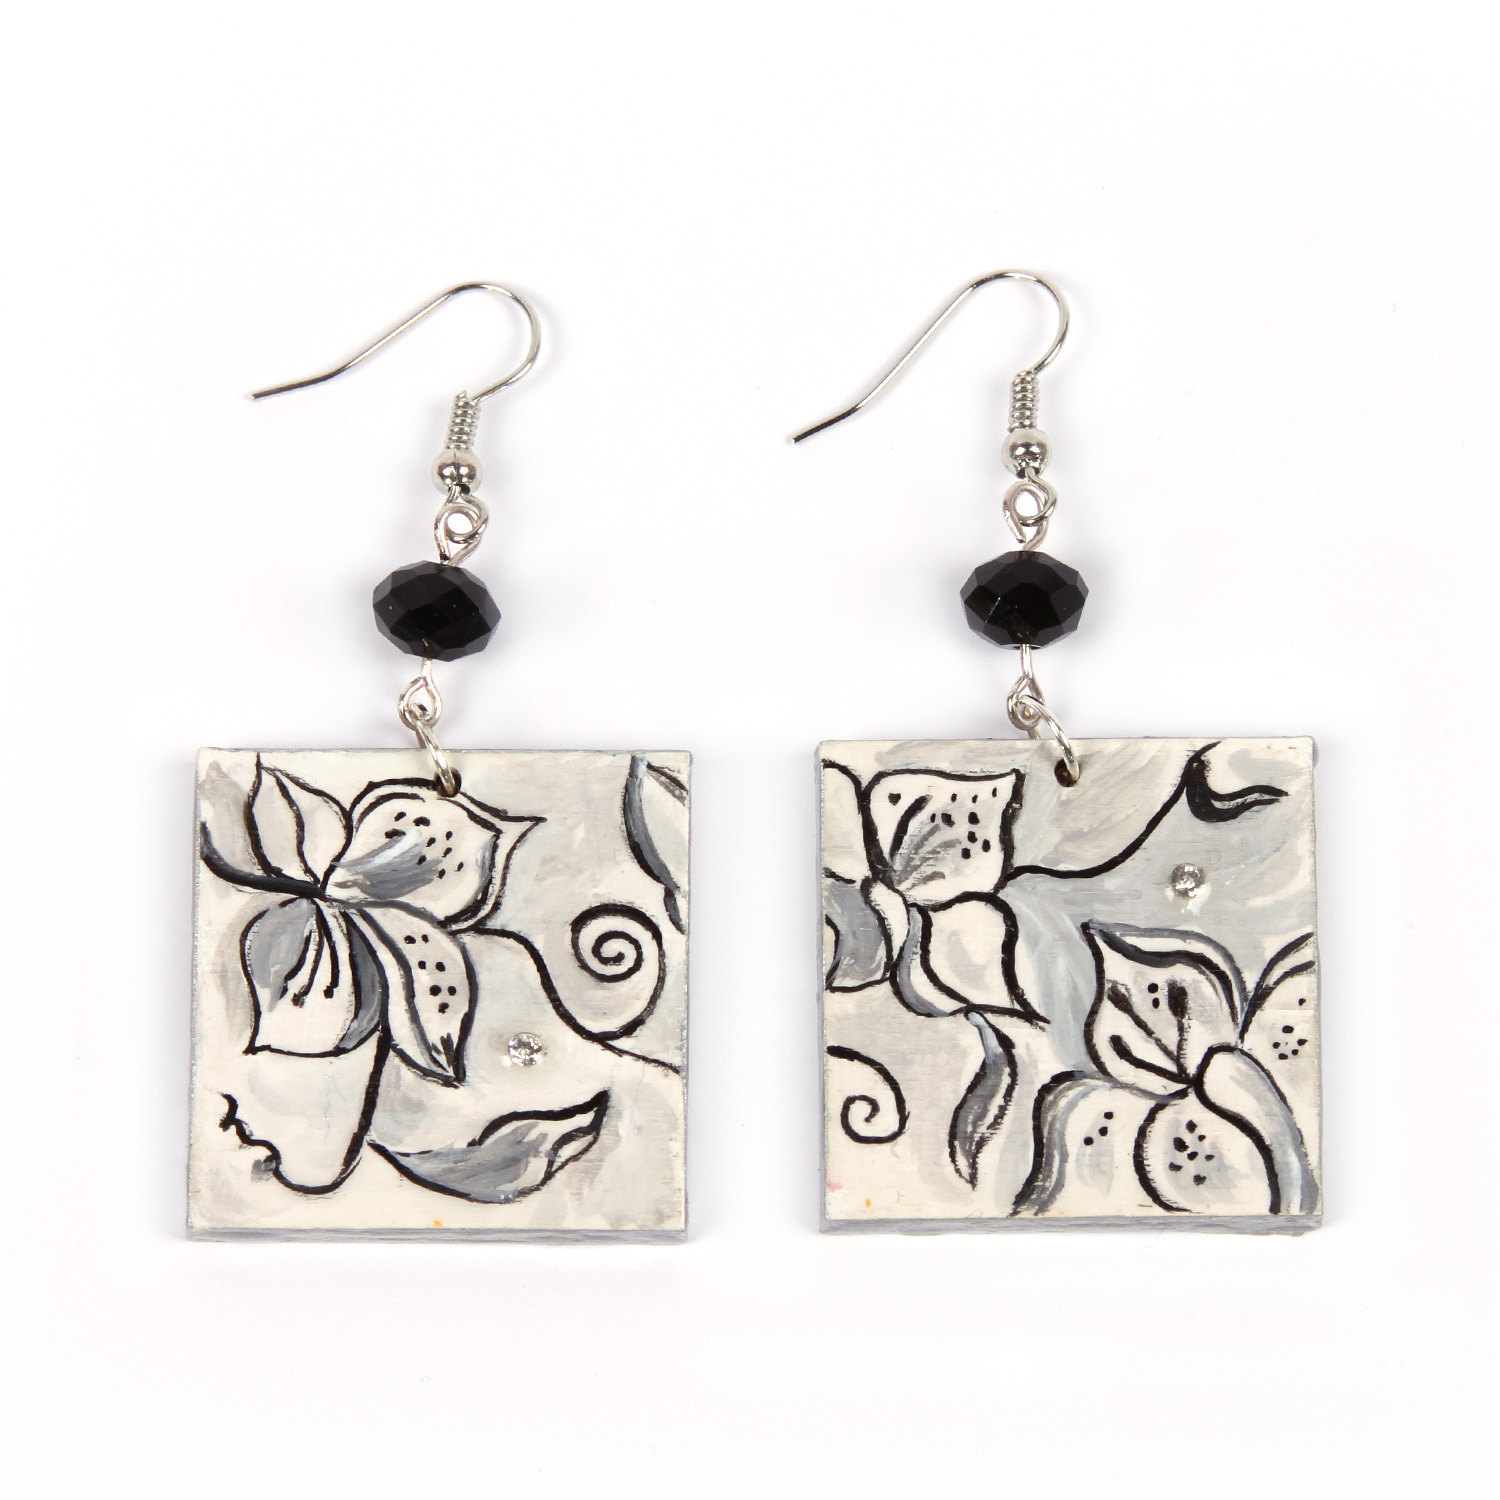 Hand painted earrings - Black and white flowers